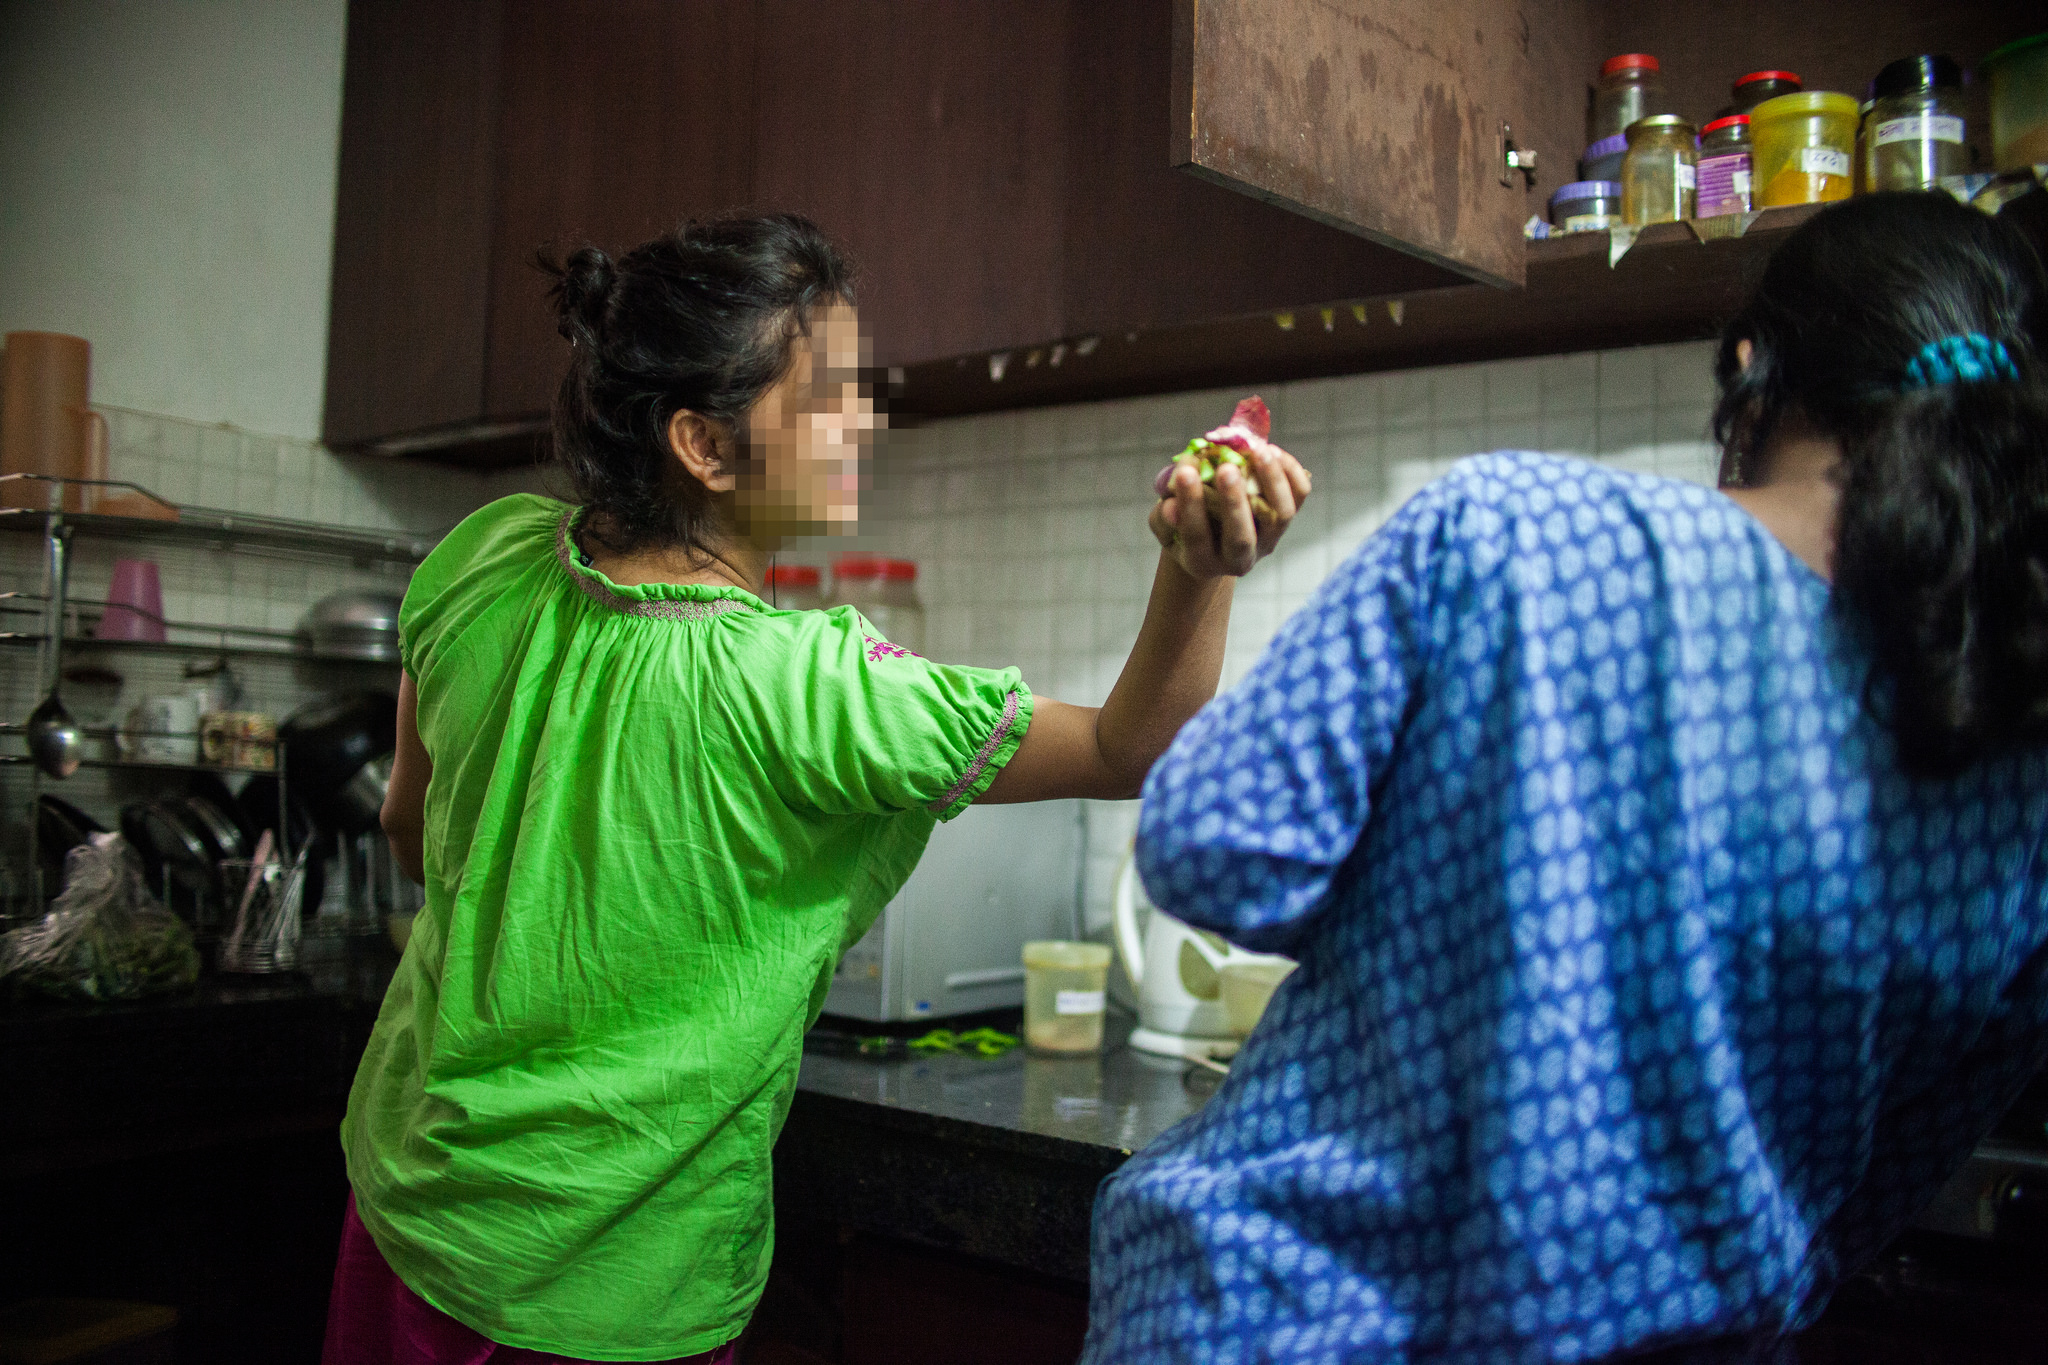 """Two of the women prepare dinner together as part of their daily chores.One of the most life-giving aspects of Beauty for Ashes is the sisterhood fostered between the girls.""""I have found happiness playing with my sisters here. They are very important to me,"""" Shreya said."""